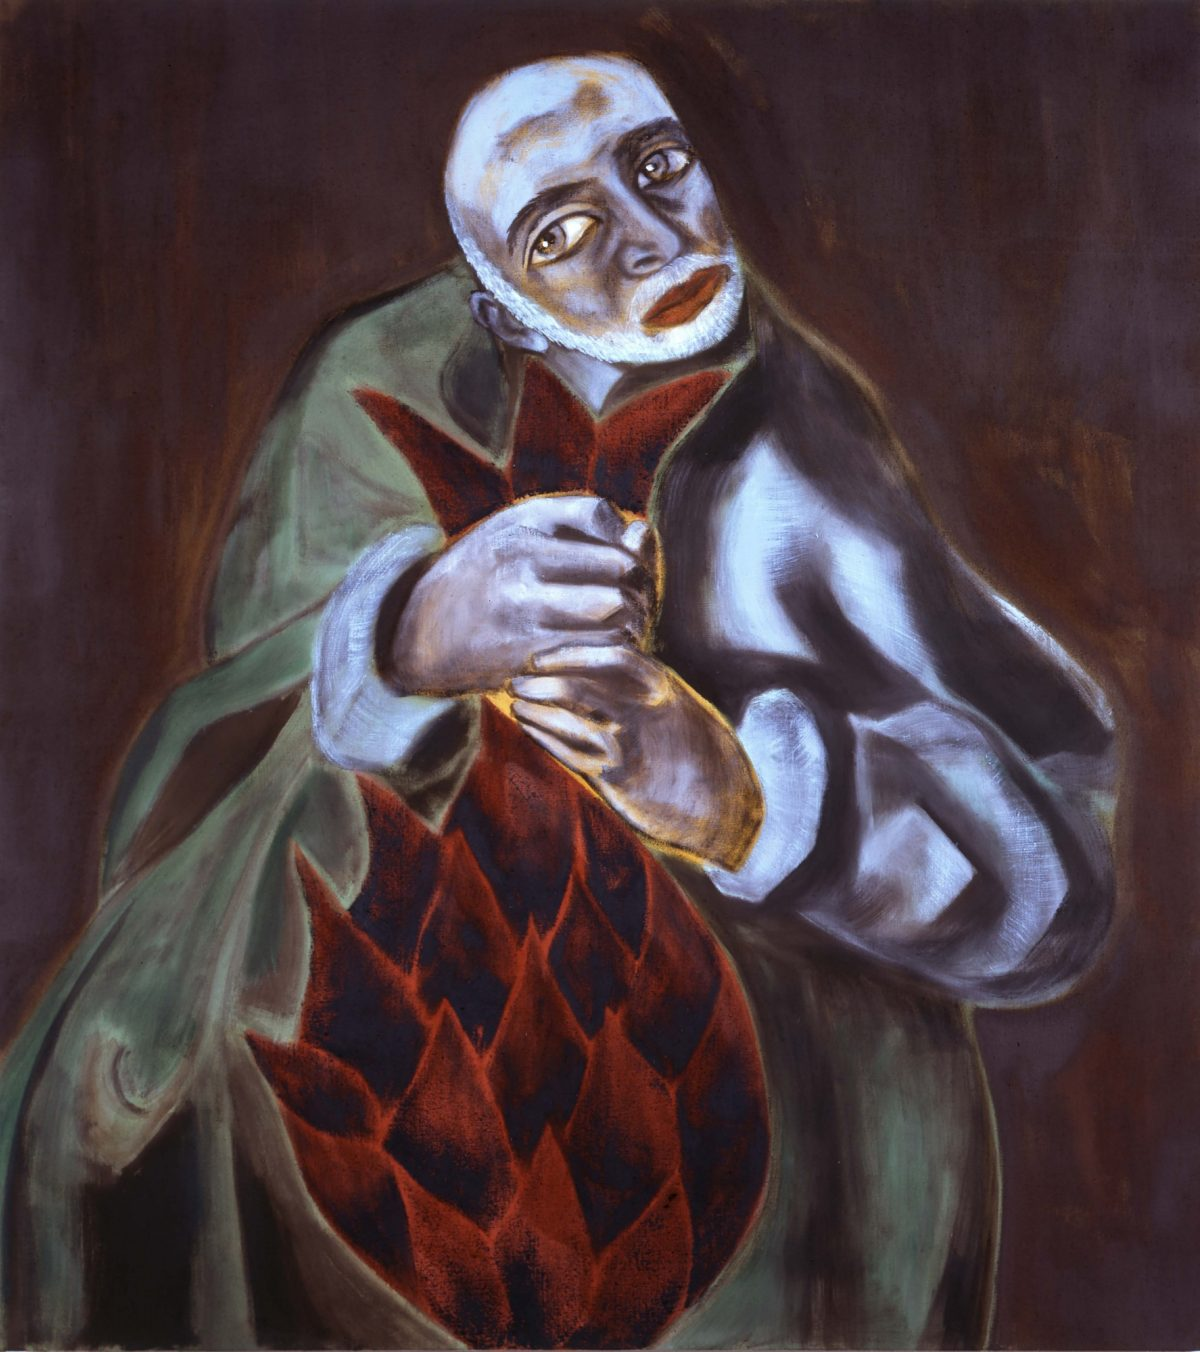 Self-Portrait as St. Thaddeus